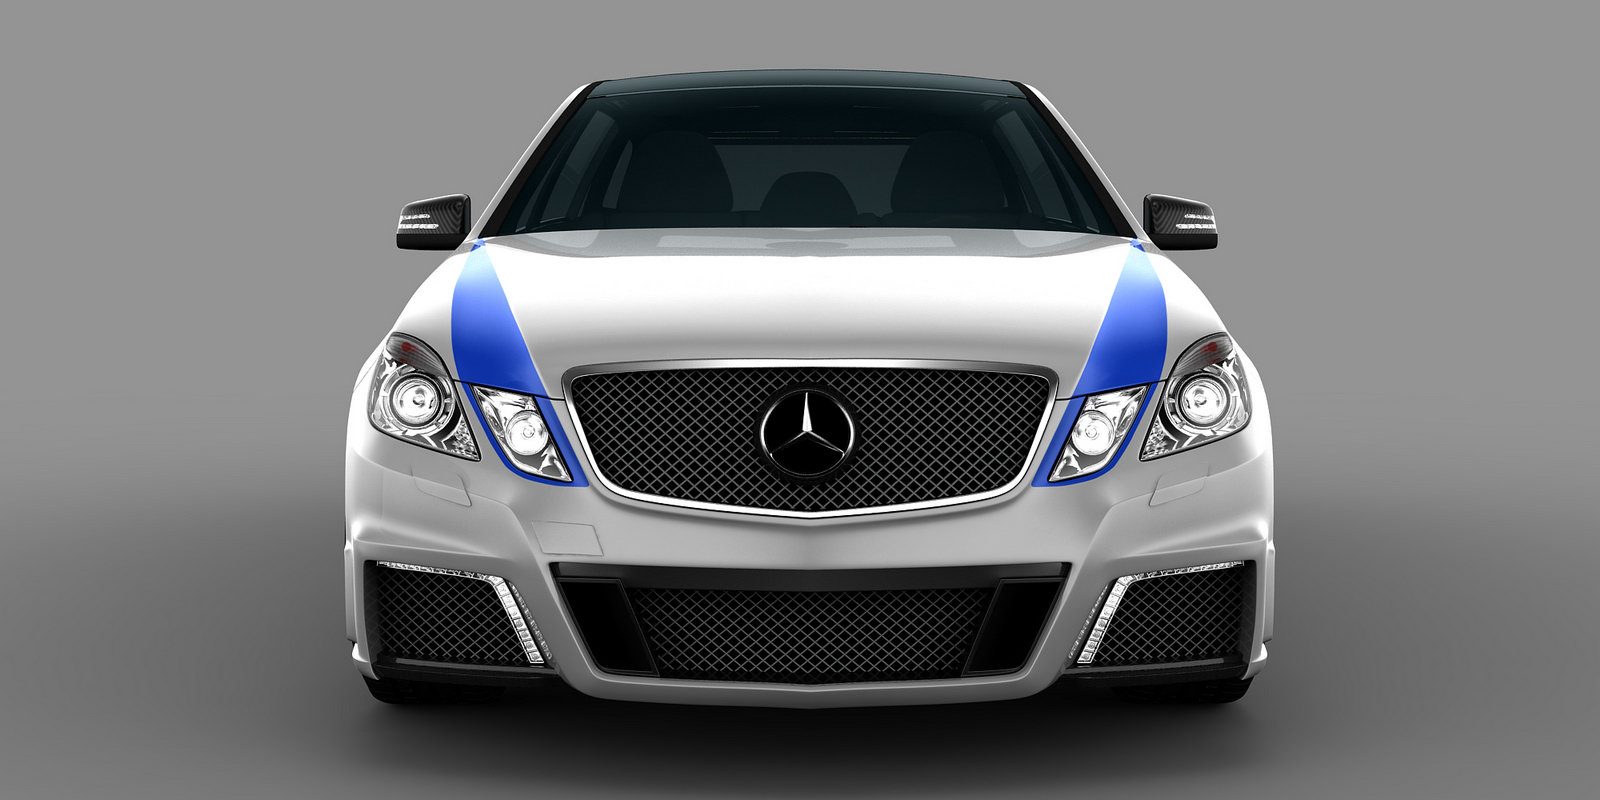 gwa tuning stylizes the new mercedes benz e63 amg estate carscoops. Black Bedroom Furniture Sets. Home Design Ideas